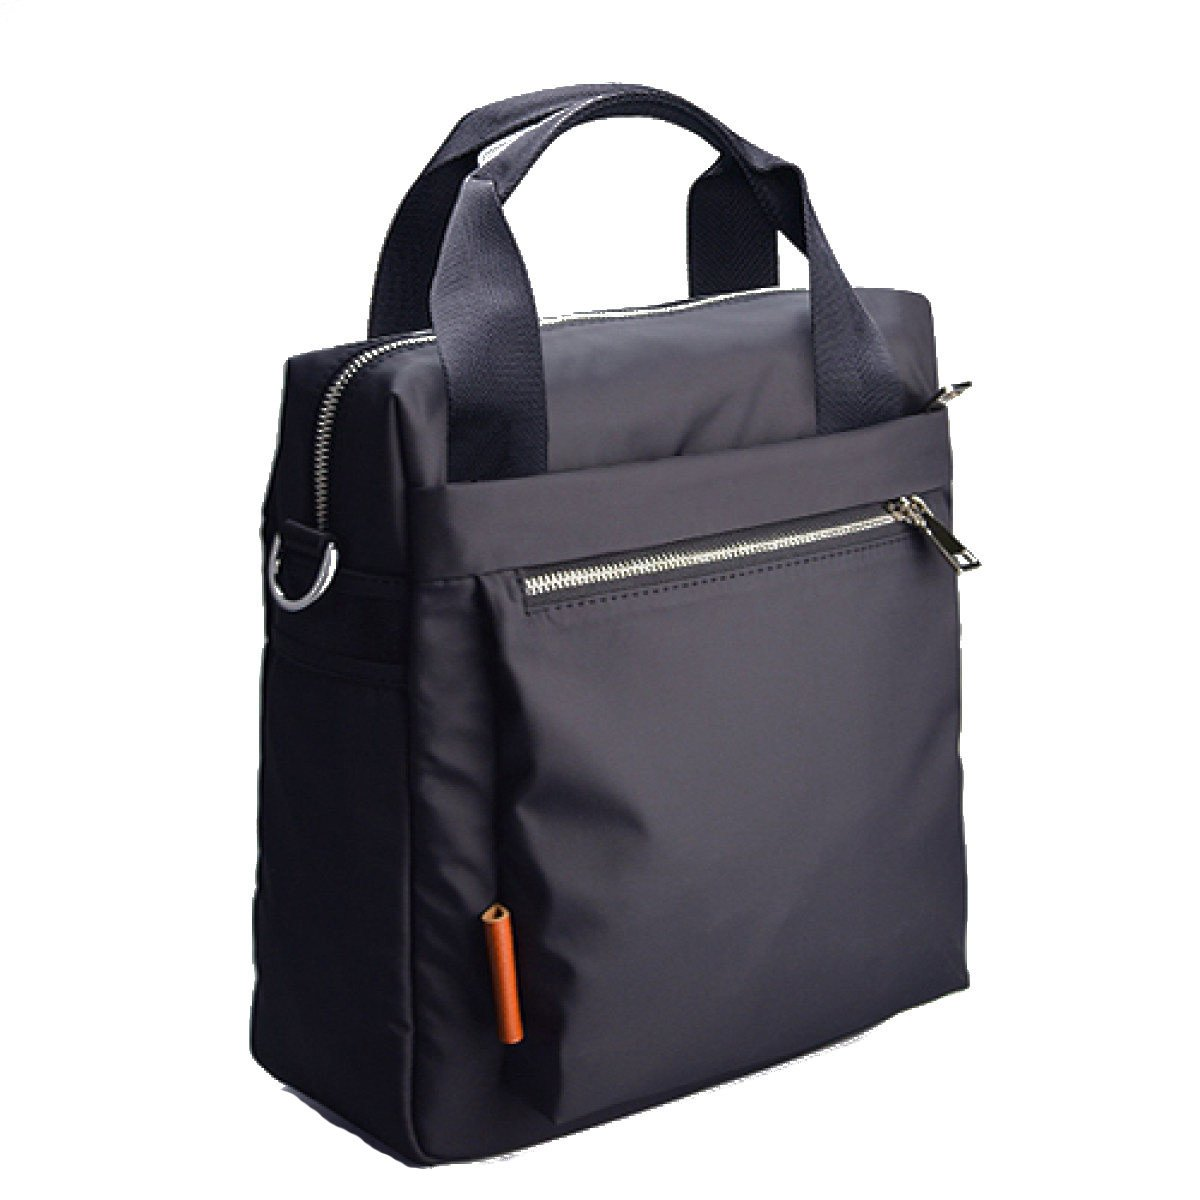 SJLN Men 8 Inch Waterproof Notebook Computer Bag Portable Shoulder Diagonal Package Briefcase Oxford Spinning Simple Retro Business English Bag,Black-OneSize by SJLN